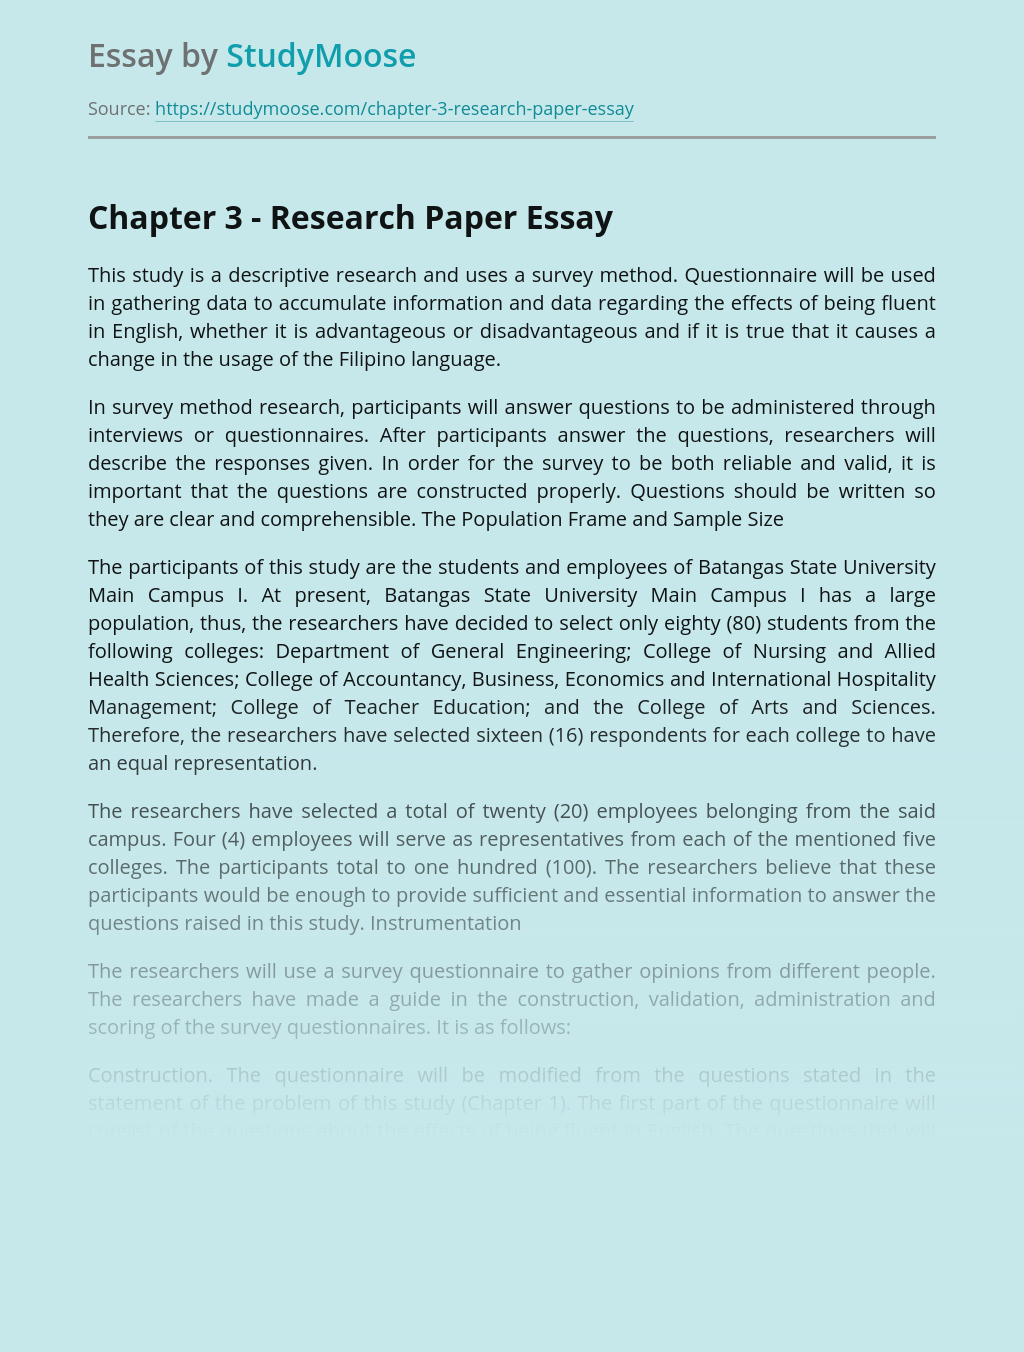 Chapter 3 - Research Paper